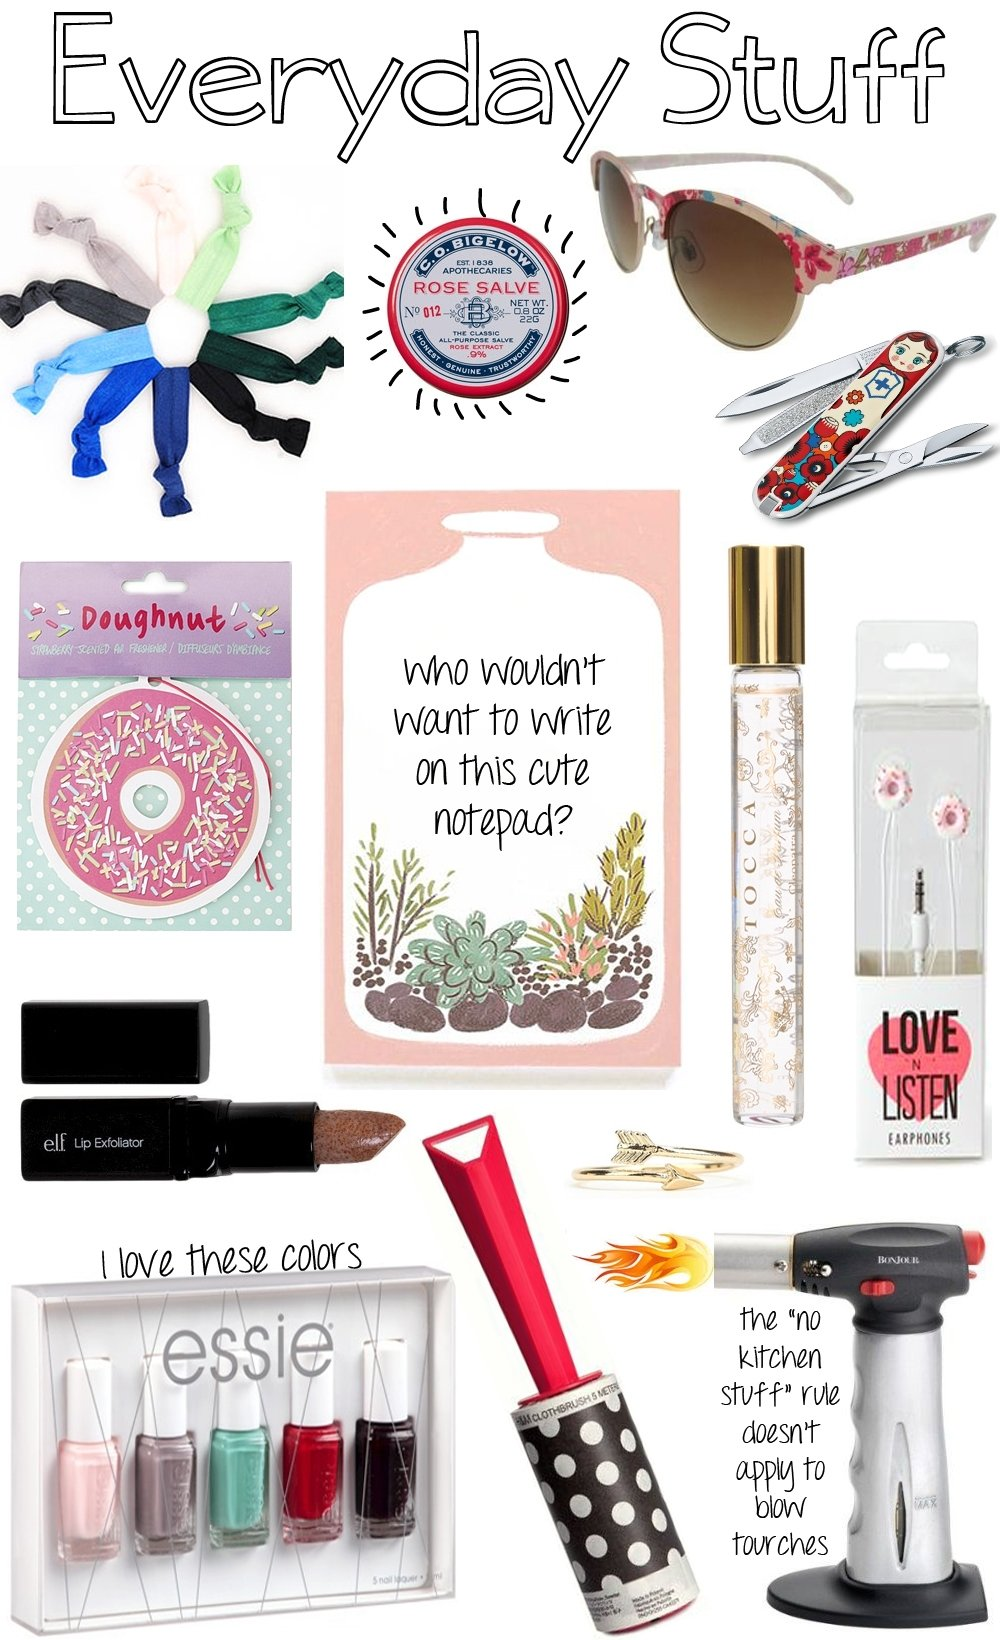 10 Lovable Stocking Stuffer Ideas For Her stocking stuffers for her making mondays 11 2021